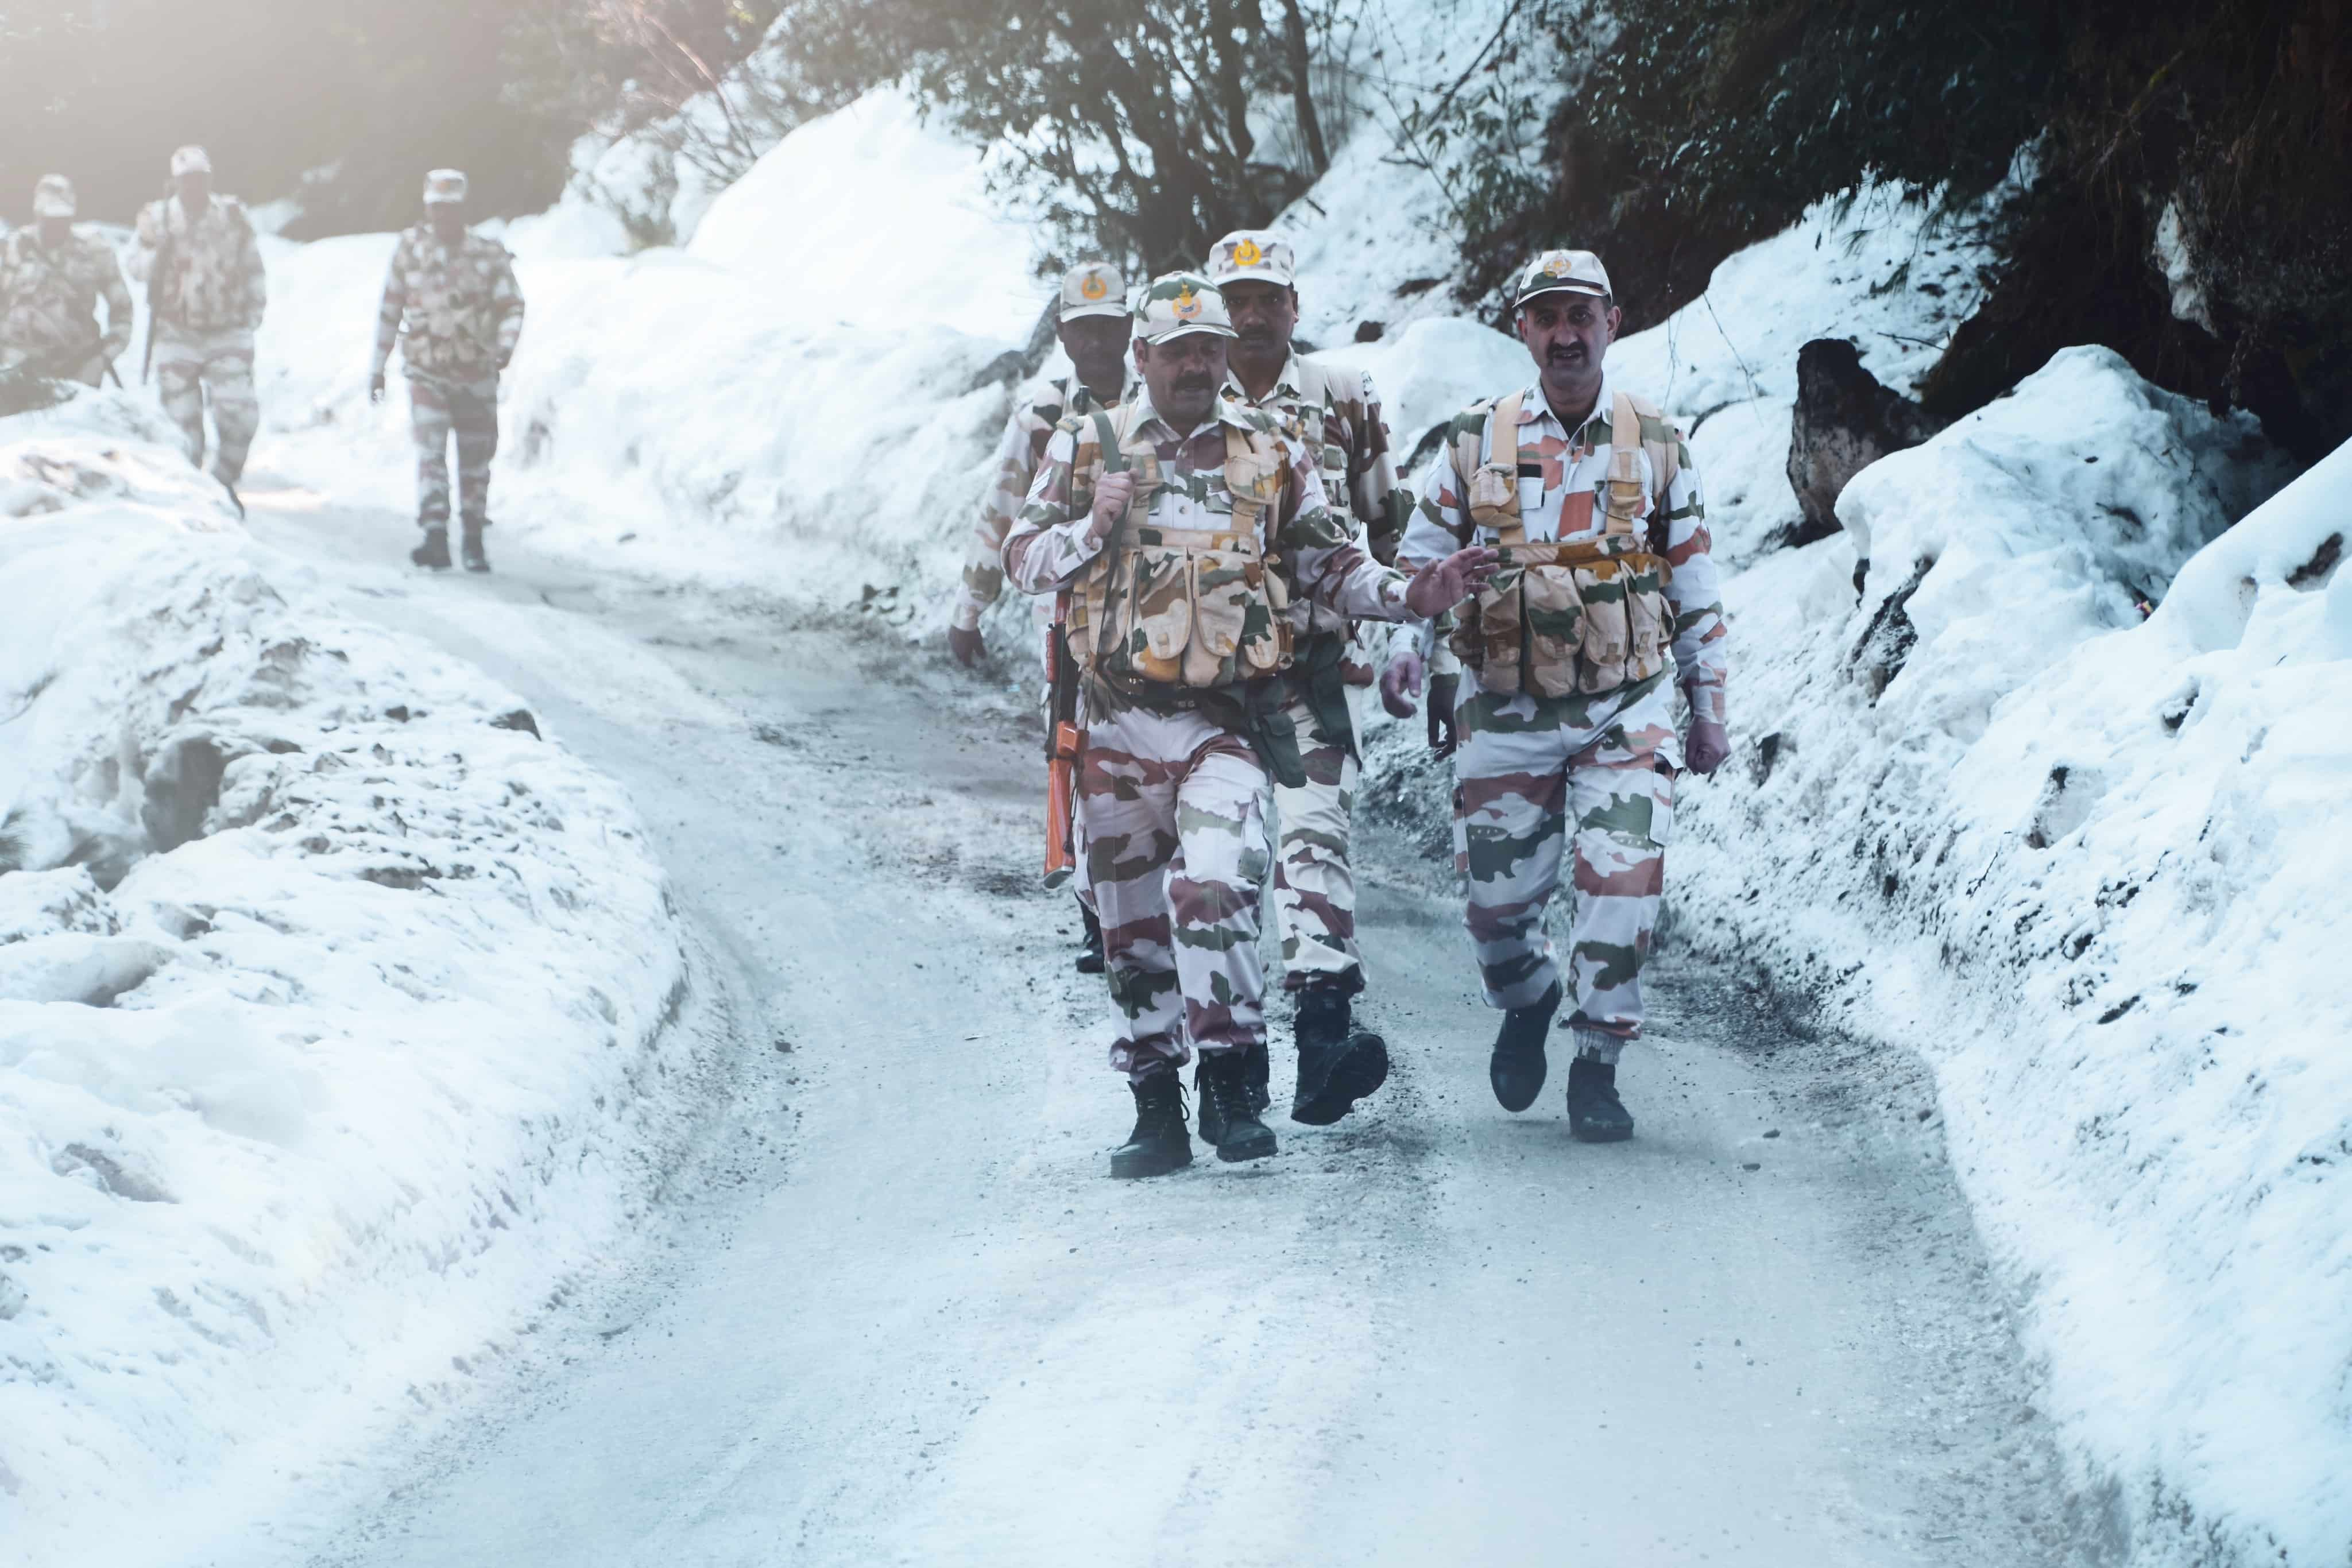 """Ministry of Defence opts for """"Atmanirbhar Bharat"""" - Make in India clothing and equipment"""